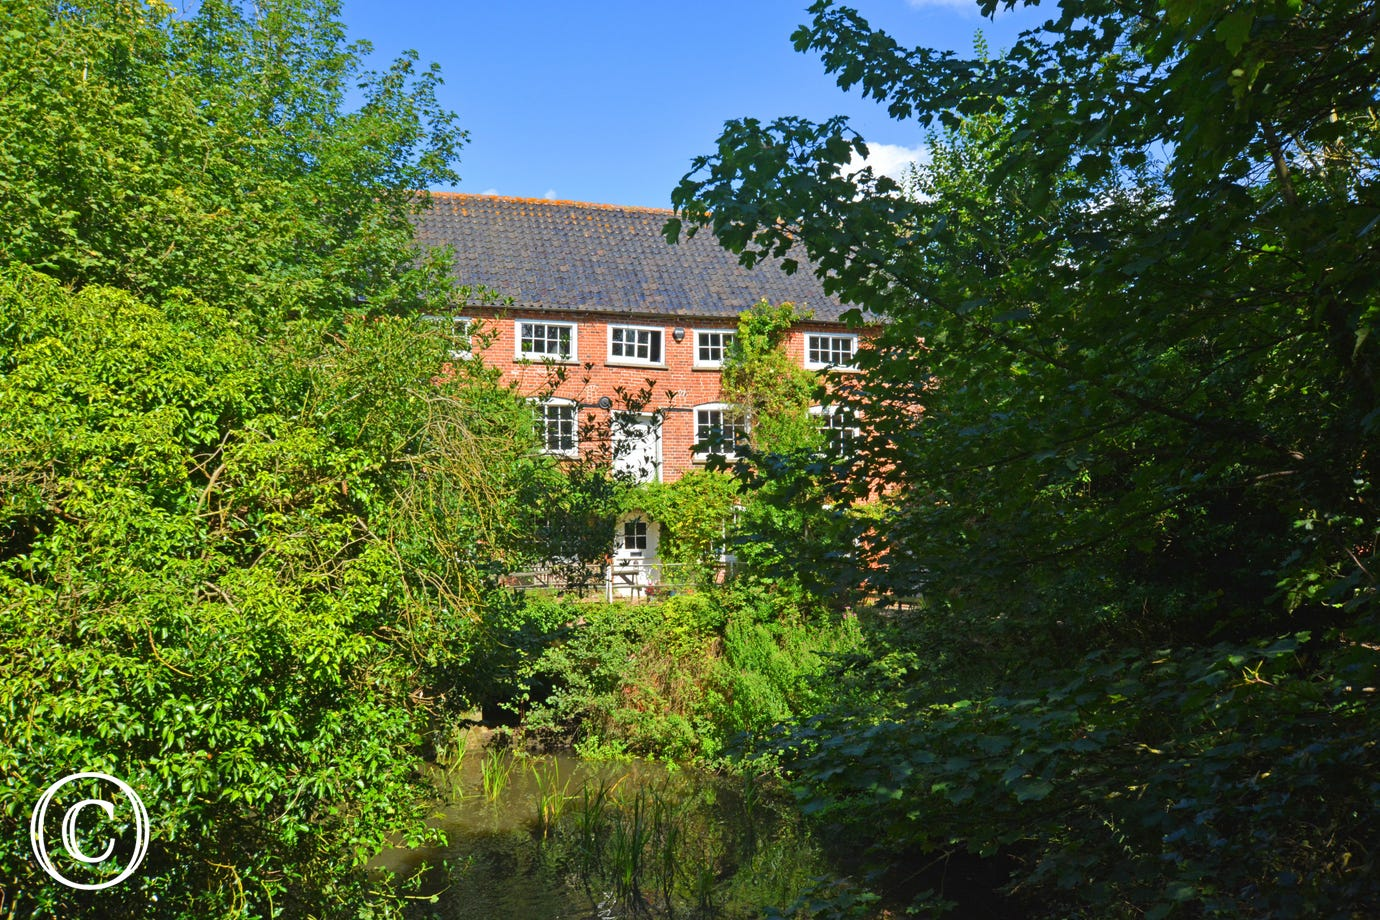 Quietly situated in an idyllic rural position one mile from the town centre, this 200-year-old mill faces south and is located directly over the mill stream, offering glorious views of the surrounding countryside.